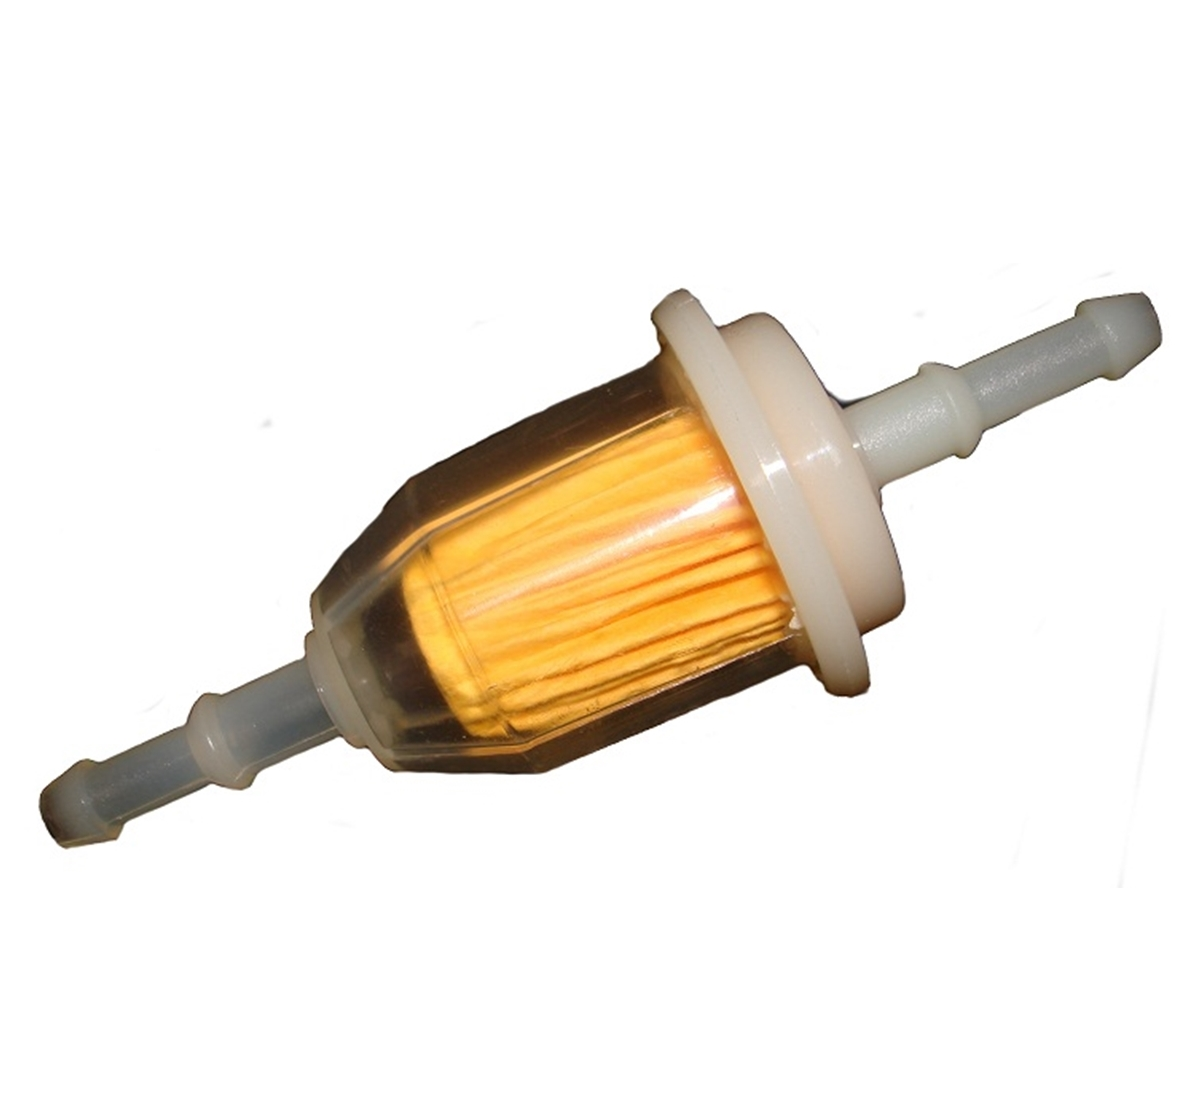 John Deere Tractor Fuel Filter 790 Wiring Diagram Together With Diagrams For Lt166 Lt170 Lt180 Lt190 Mowers Part Am116304 Rh Japgmowers Co Uk